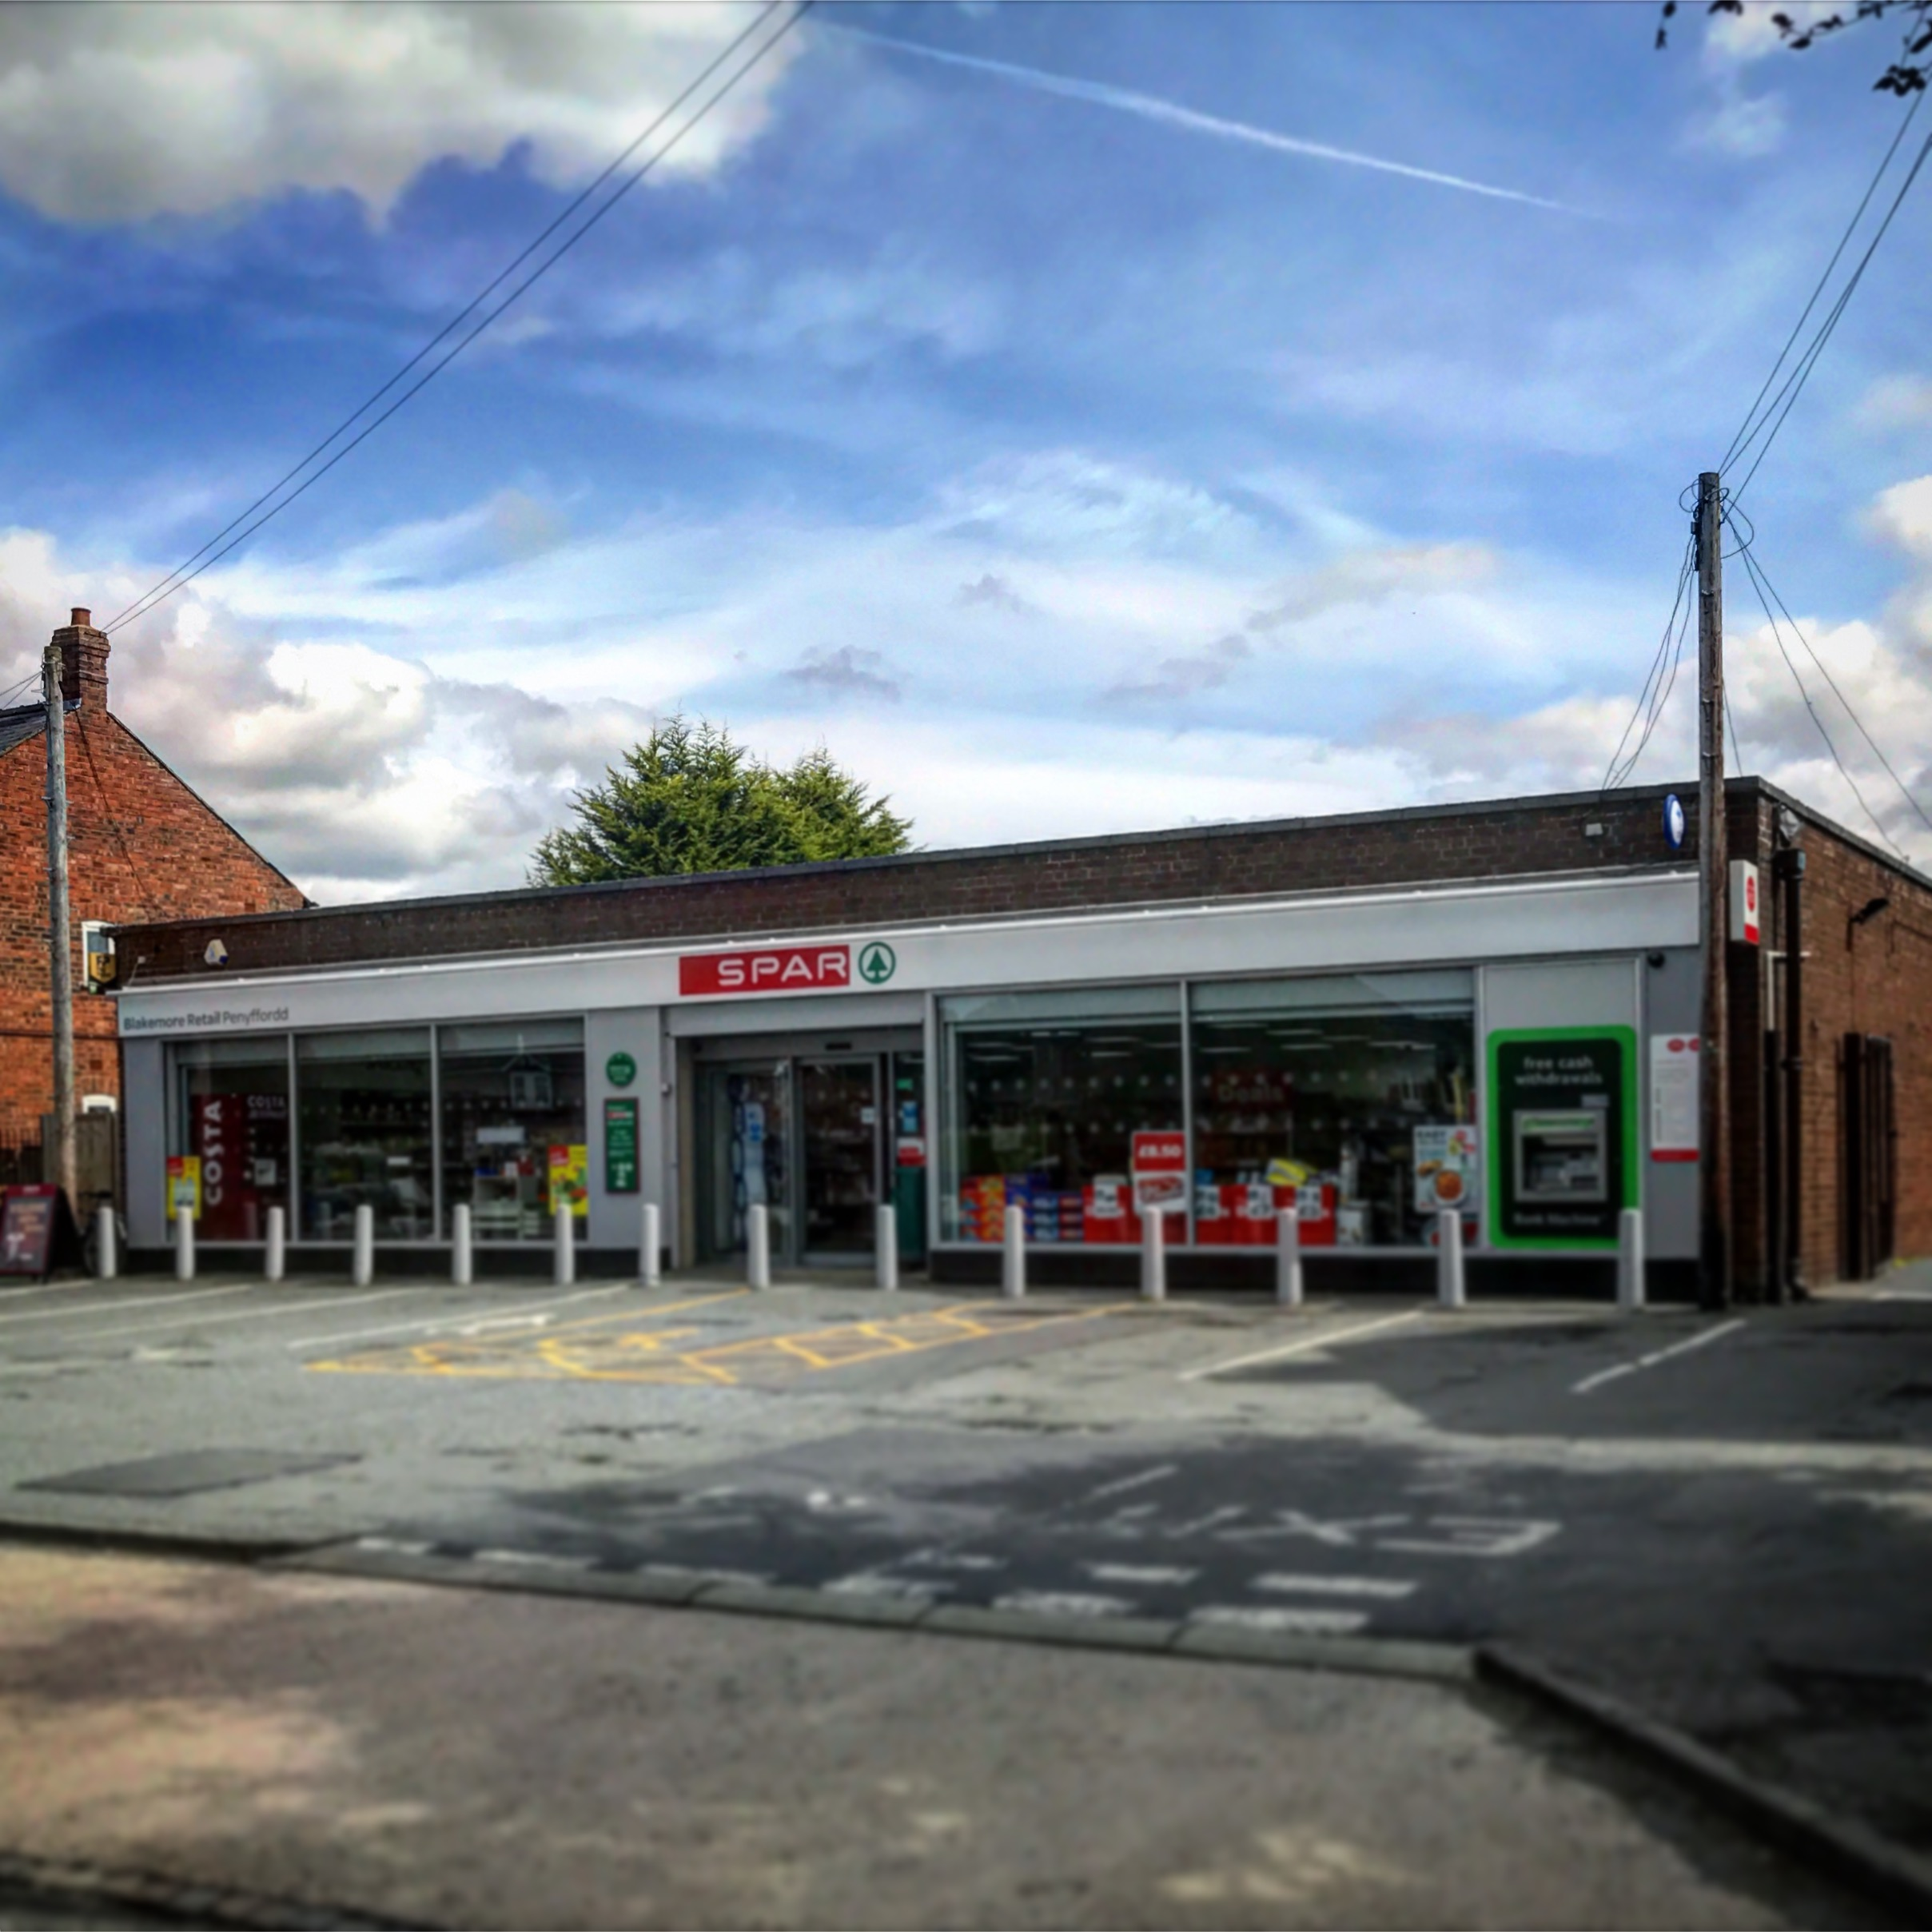 Shops & Banks - Food, Post Office and nearest Banks